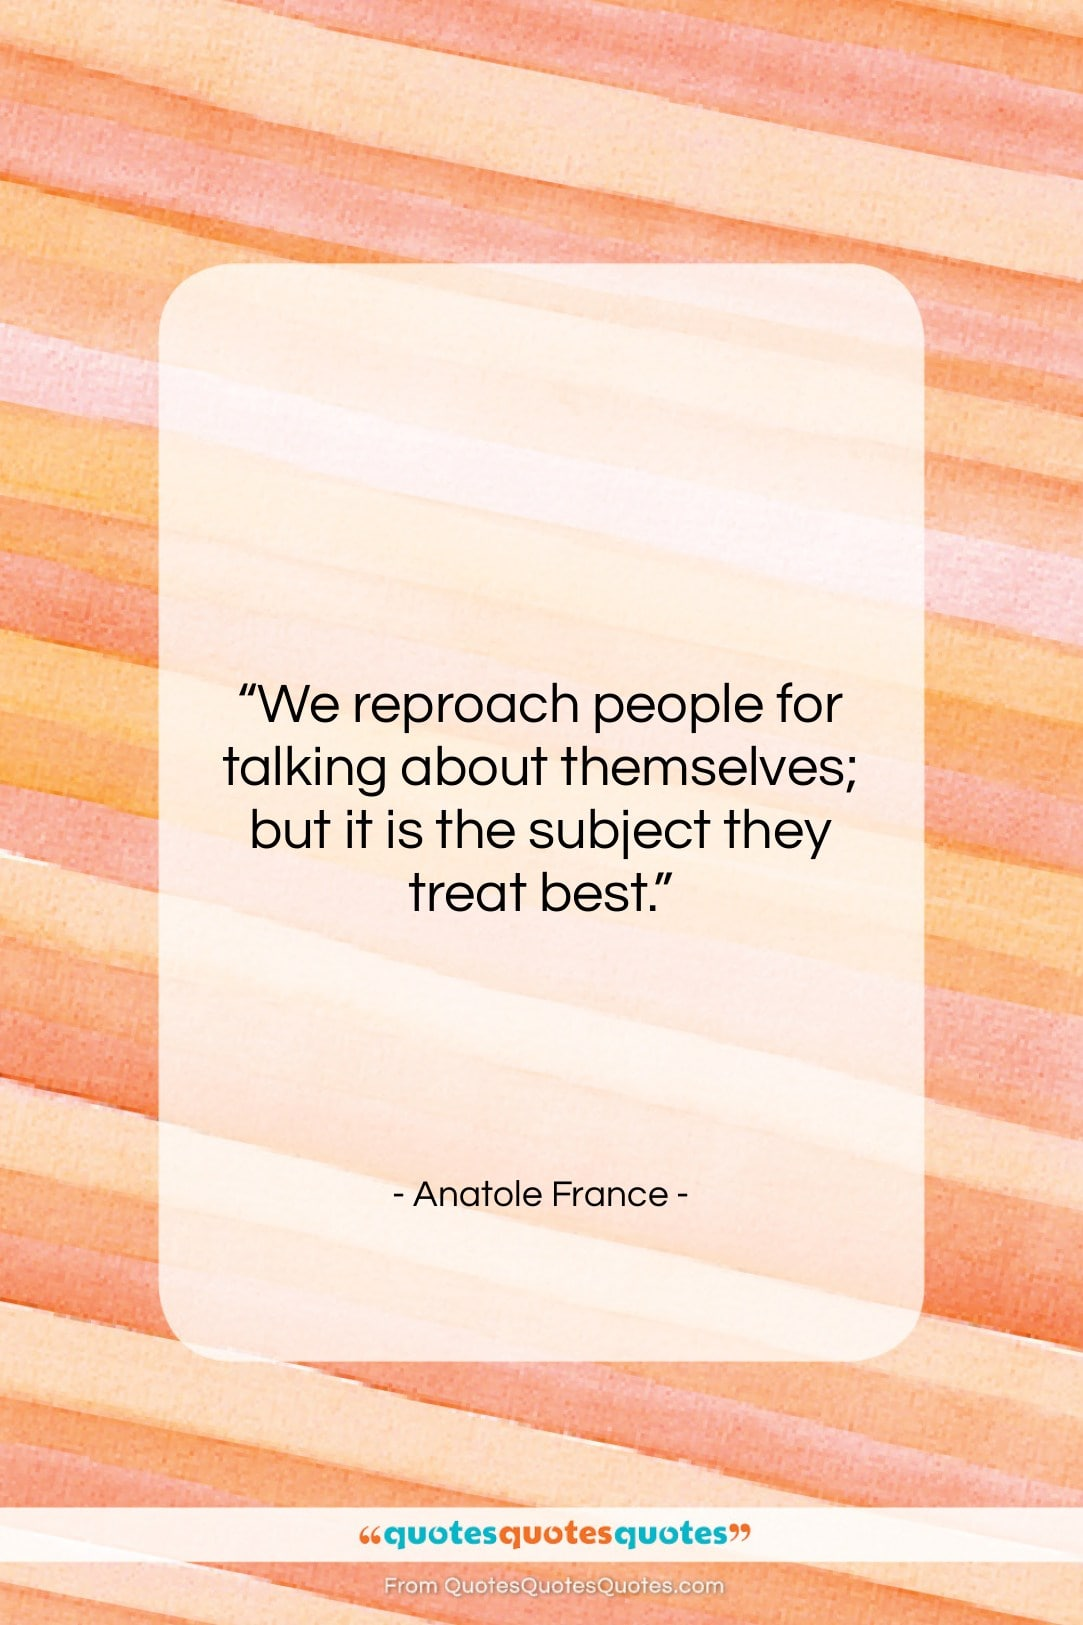 """Anatole France quote: """"We reproach people for talking about themselves;…""""- at QuotesQuotesQuotes.com"""